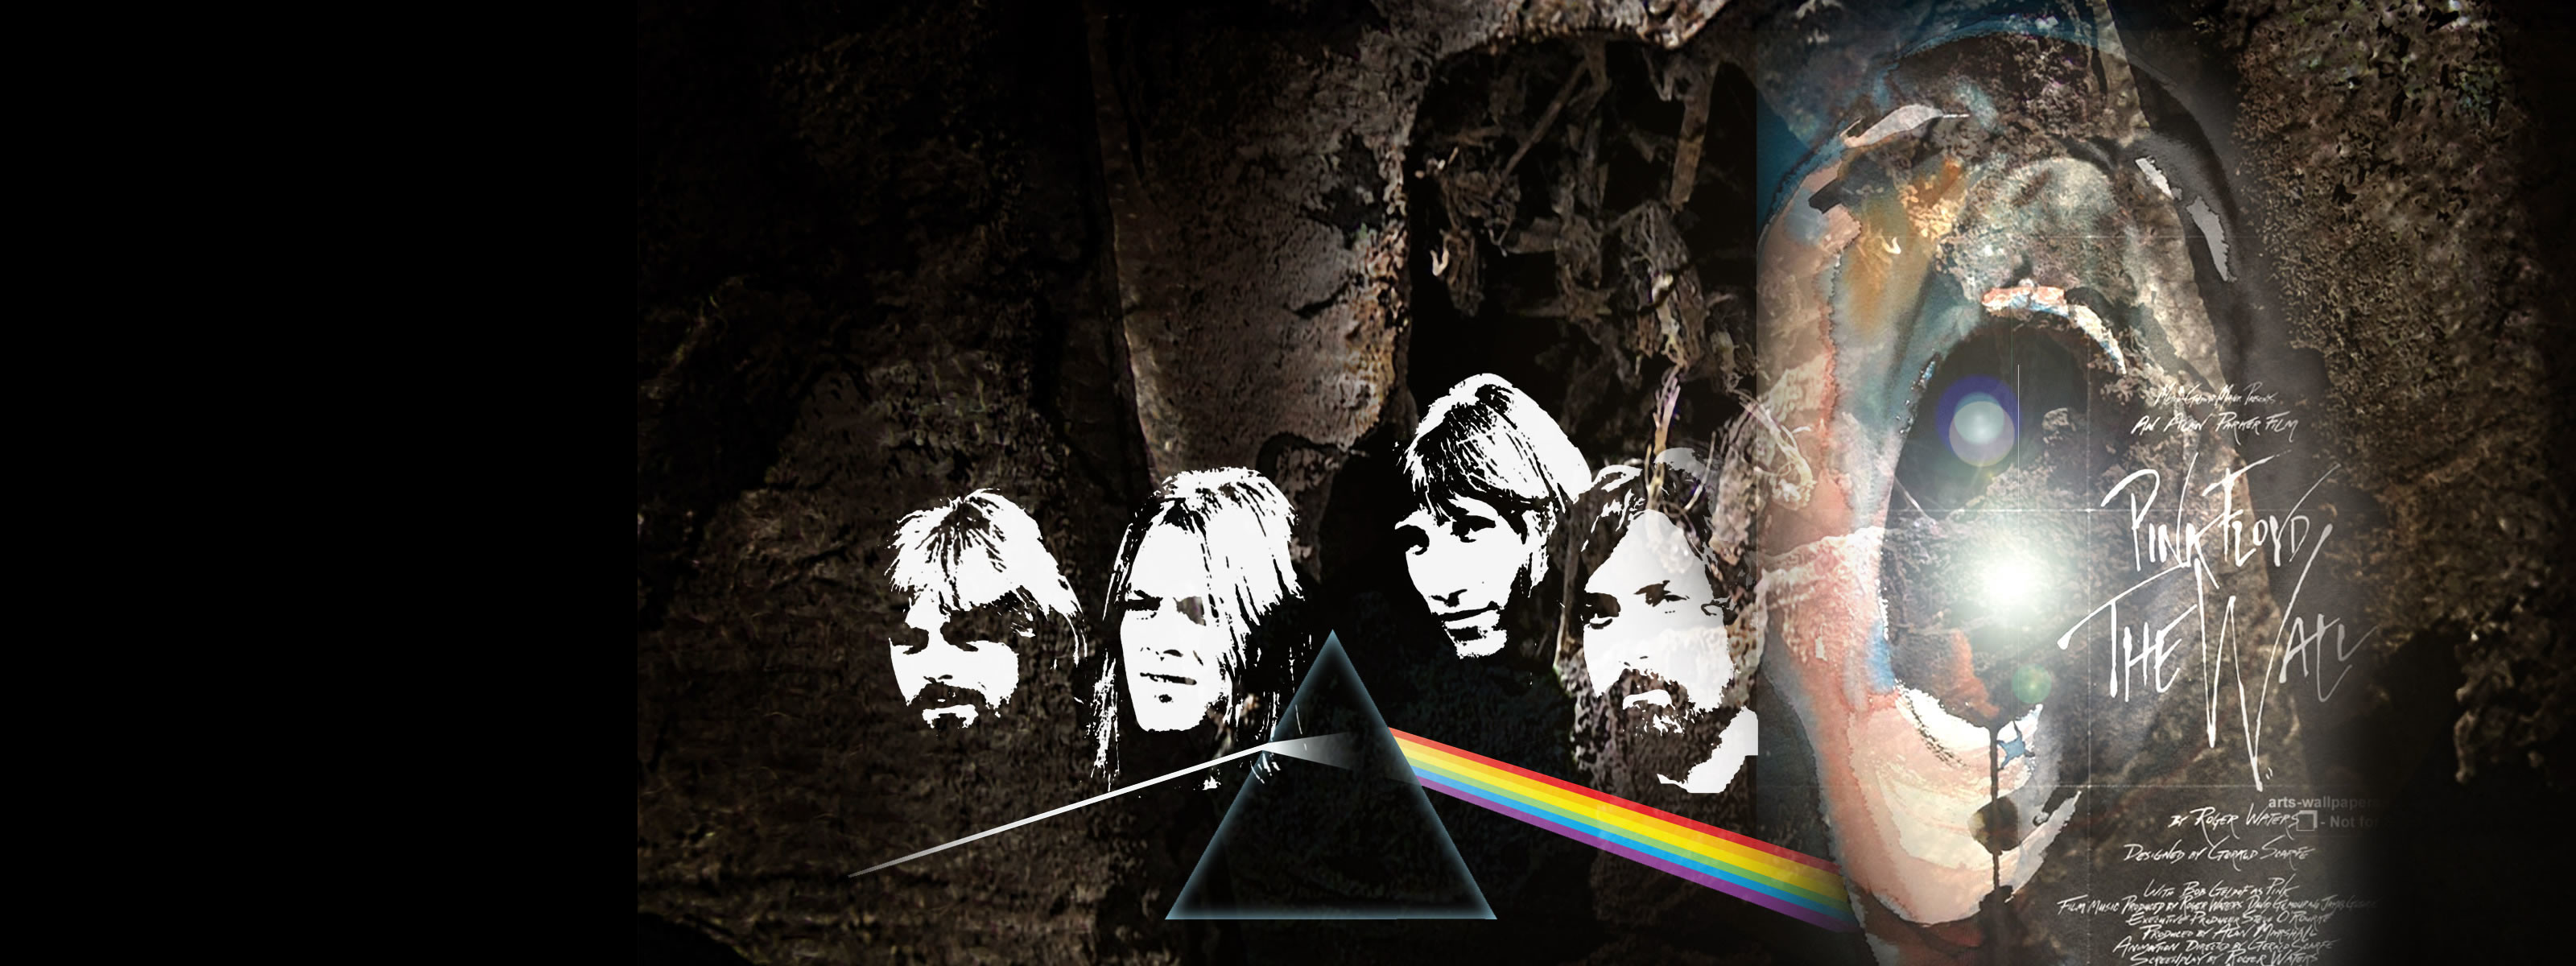 … hd wallpapers scream against the wall under pink floyd …